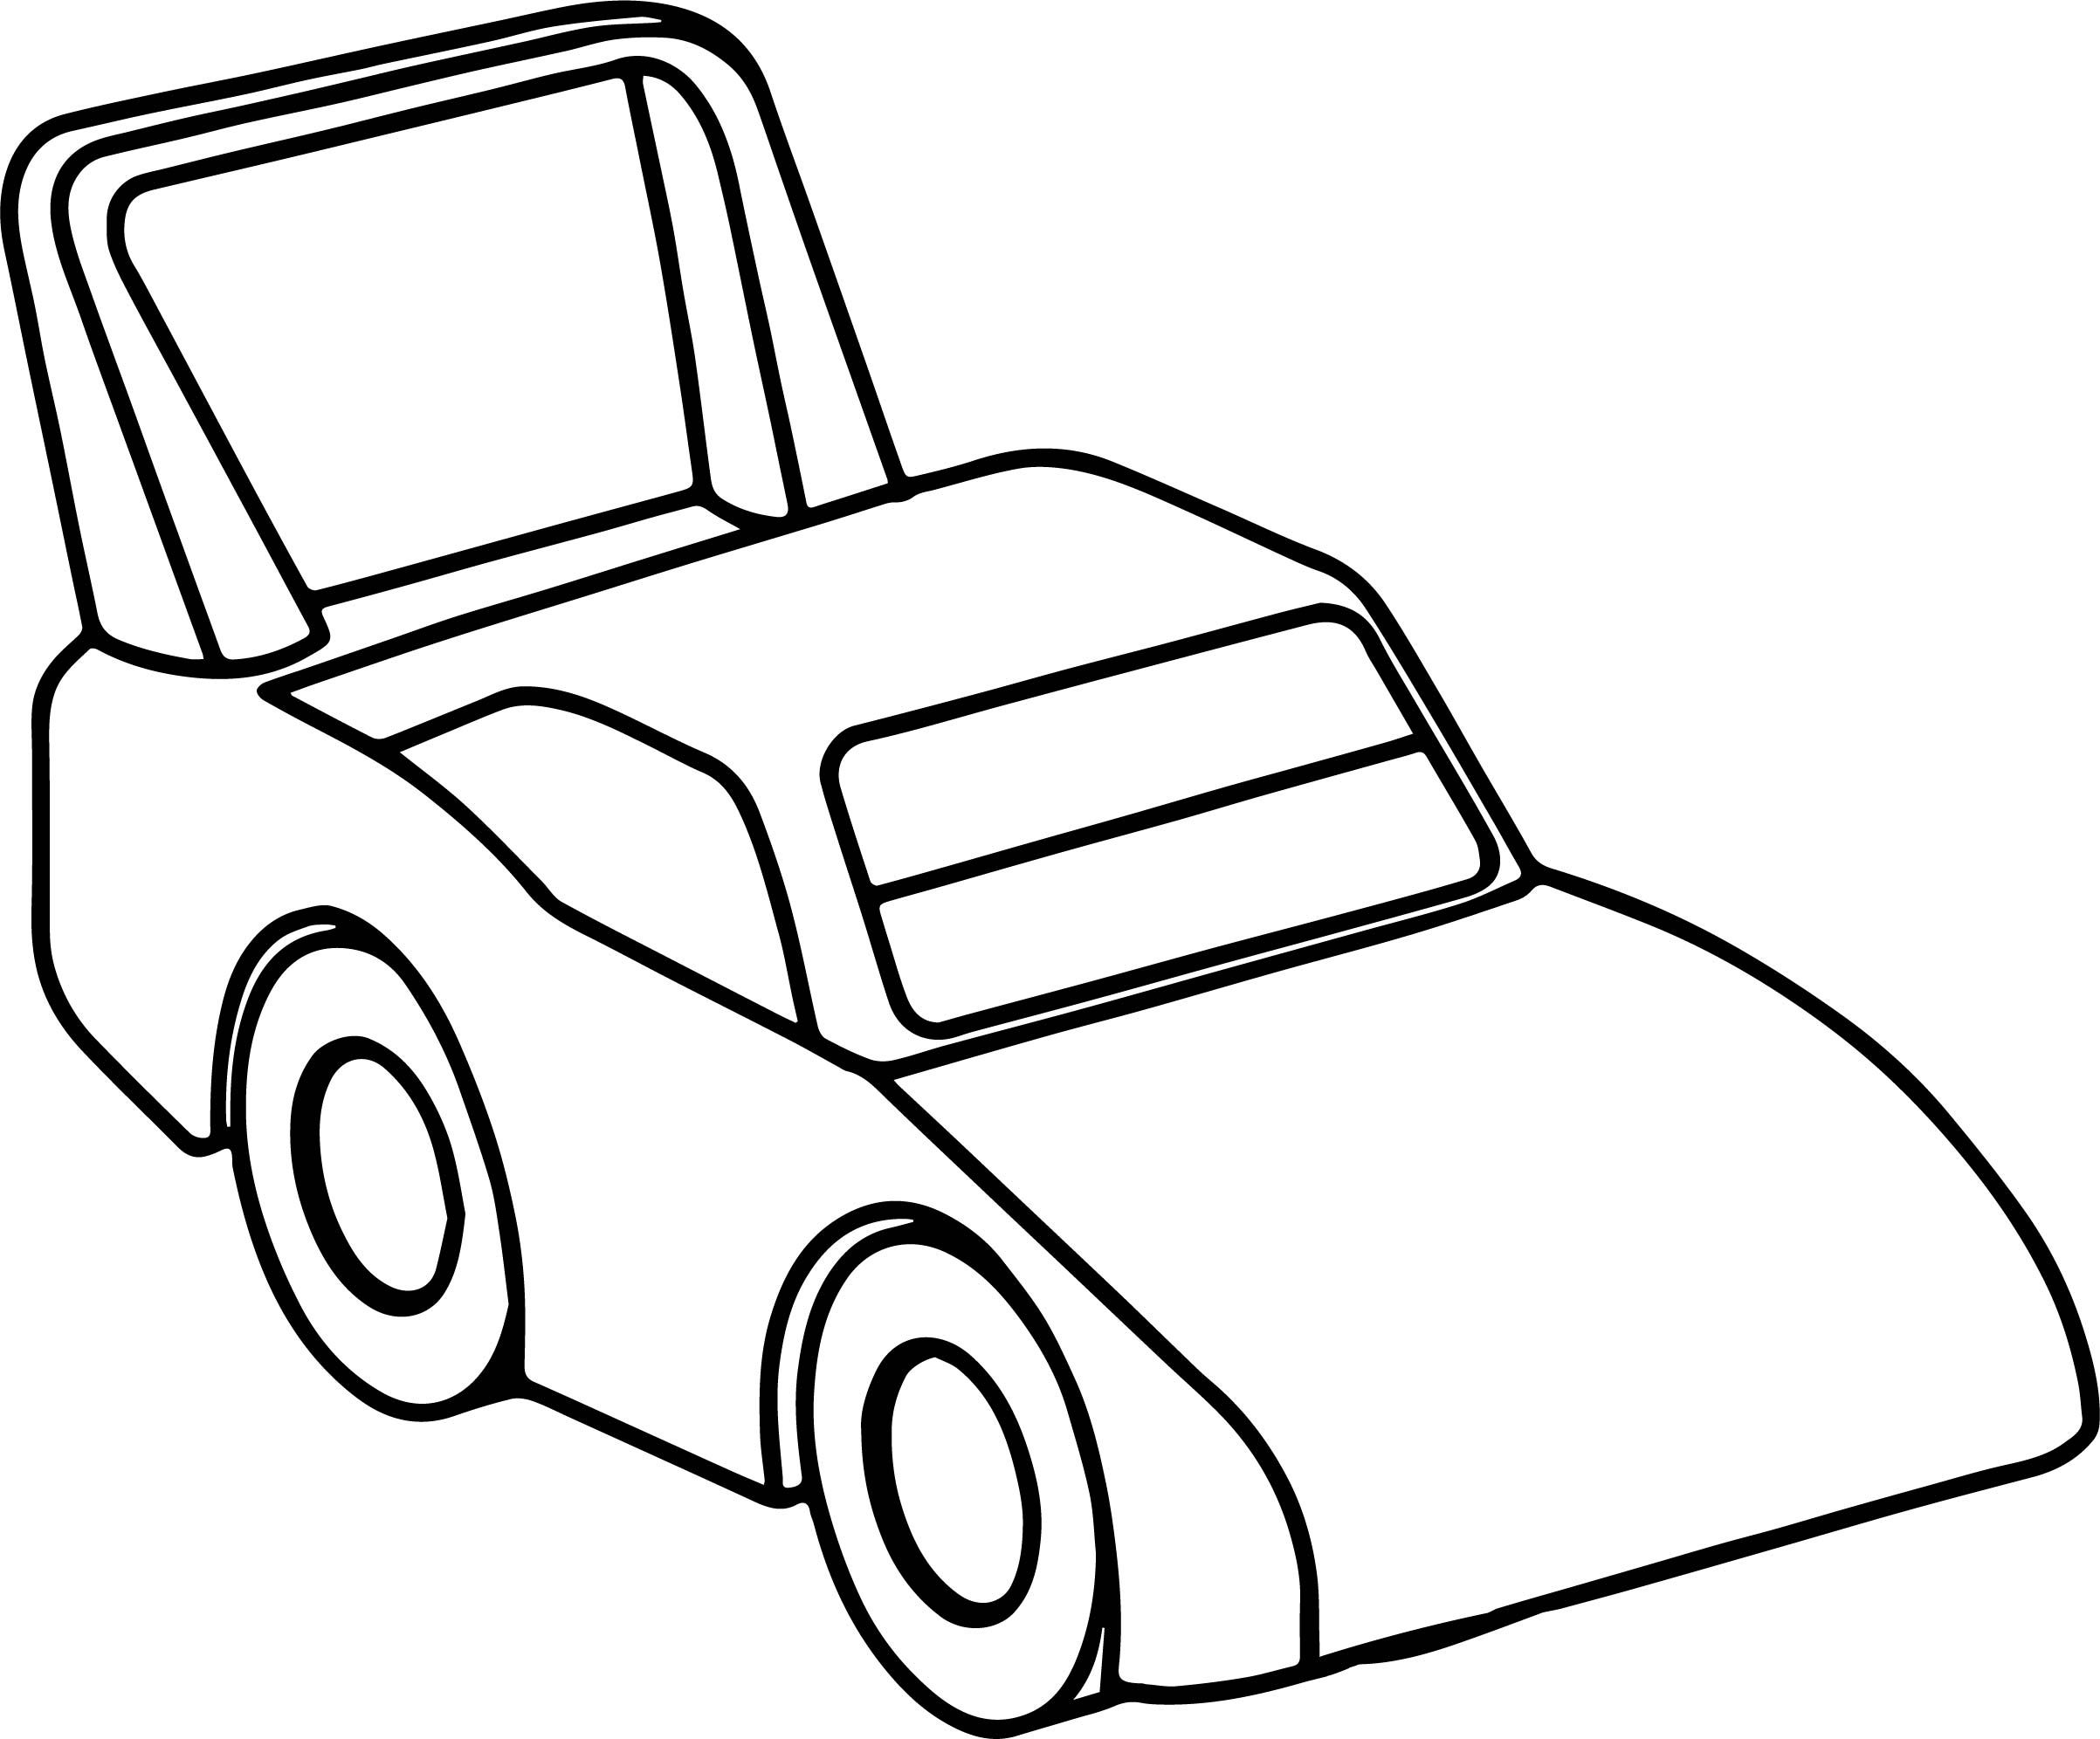 nice Race Toy Car Coloring Page | Cars coloring pages, Toy car ...